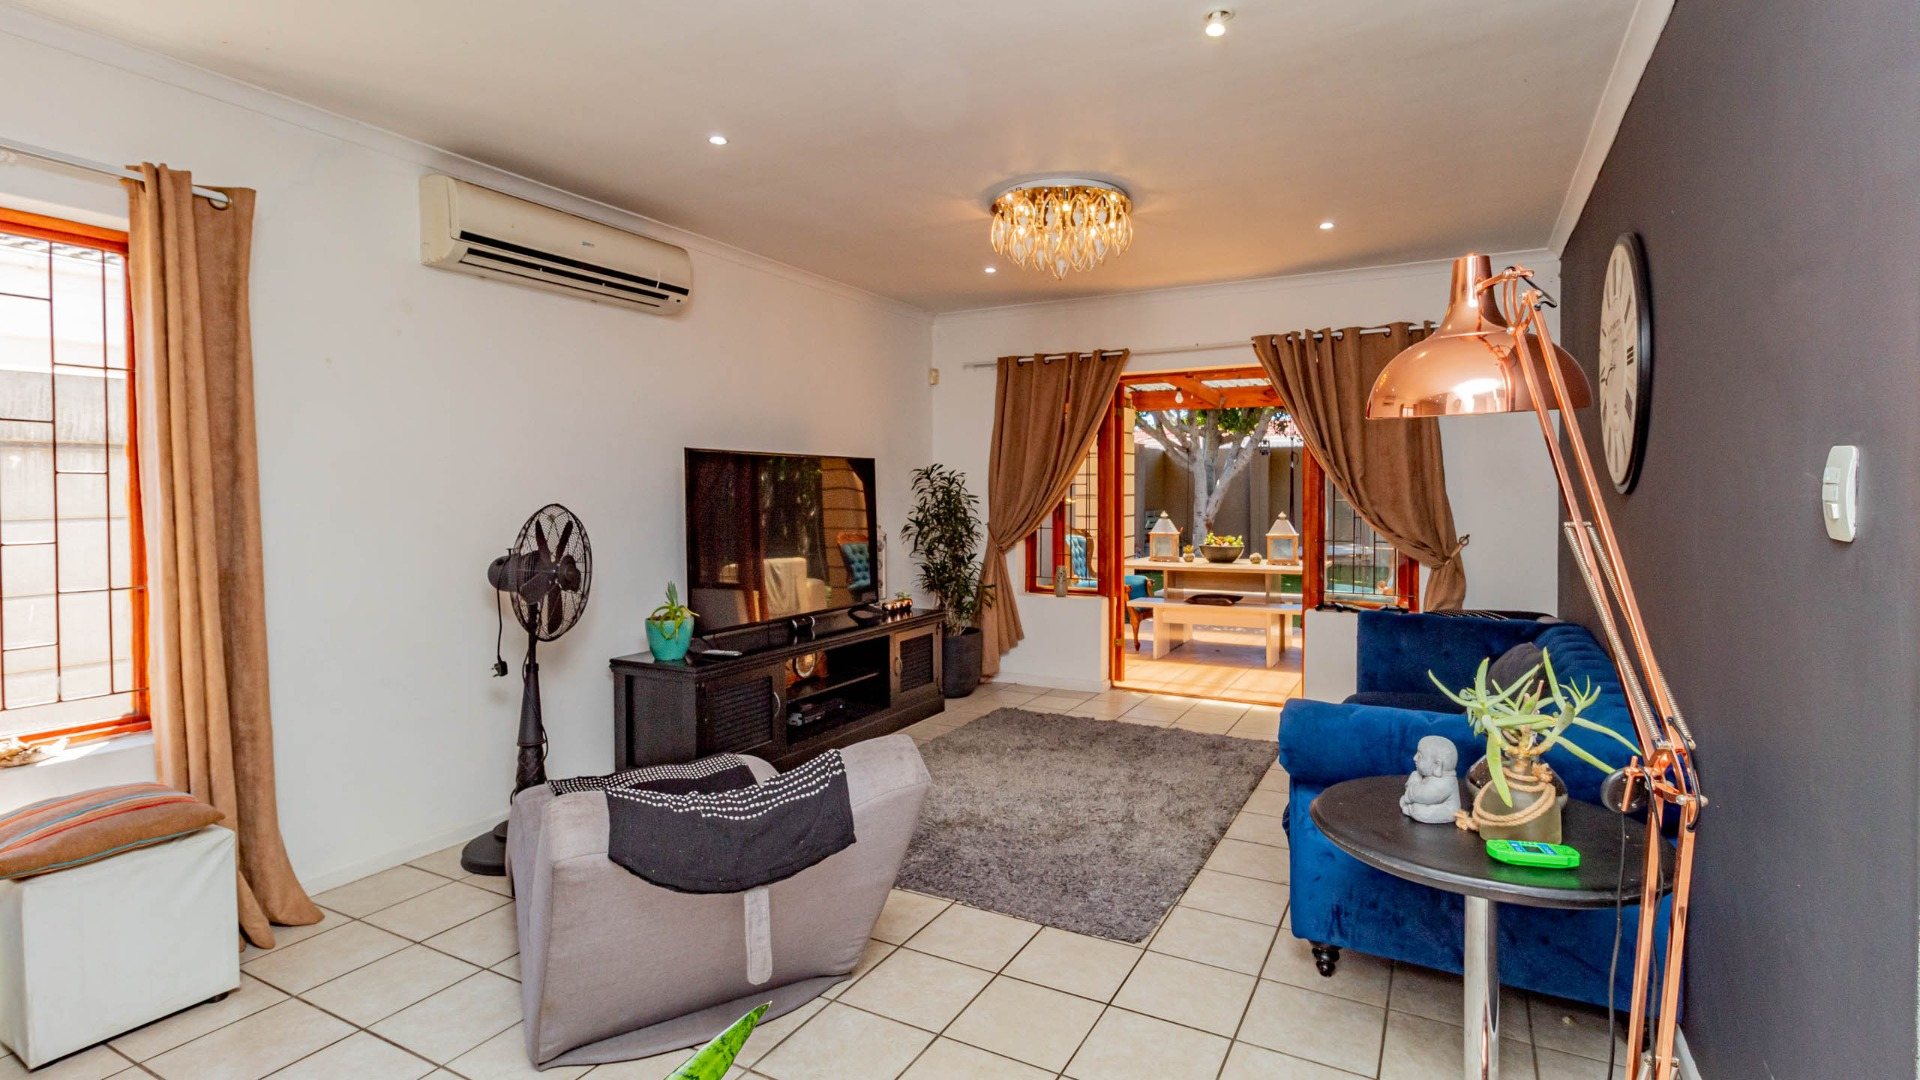 3 Bedroom House For Sale in Parklands